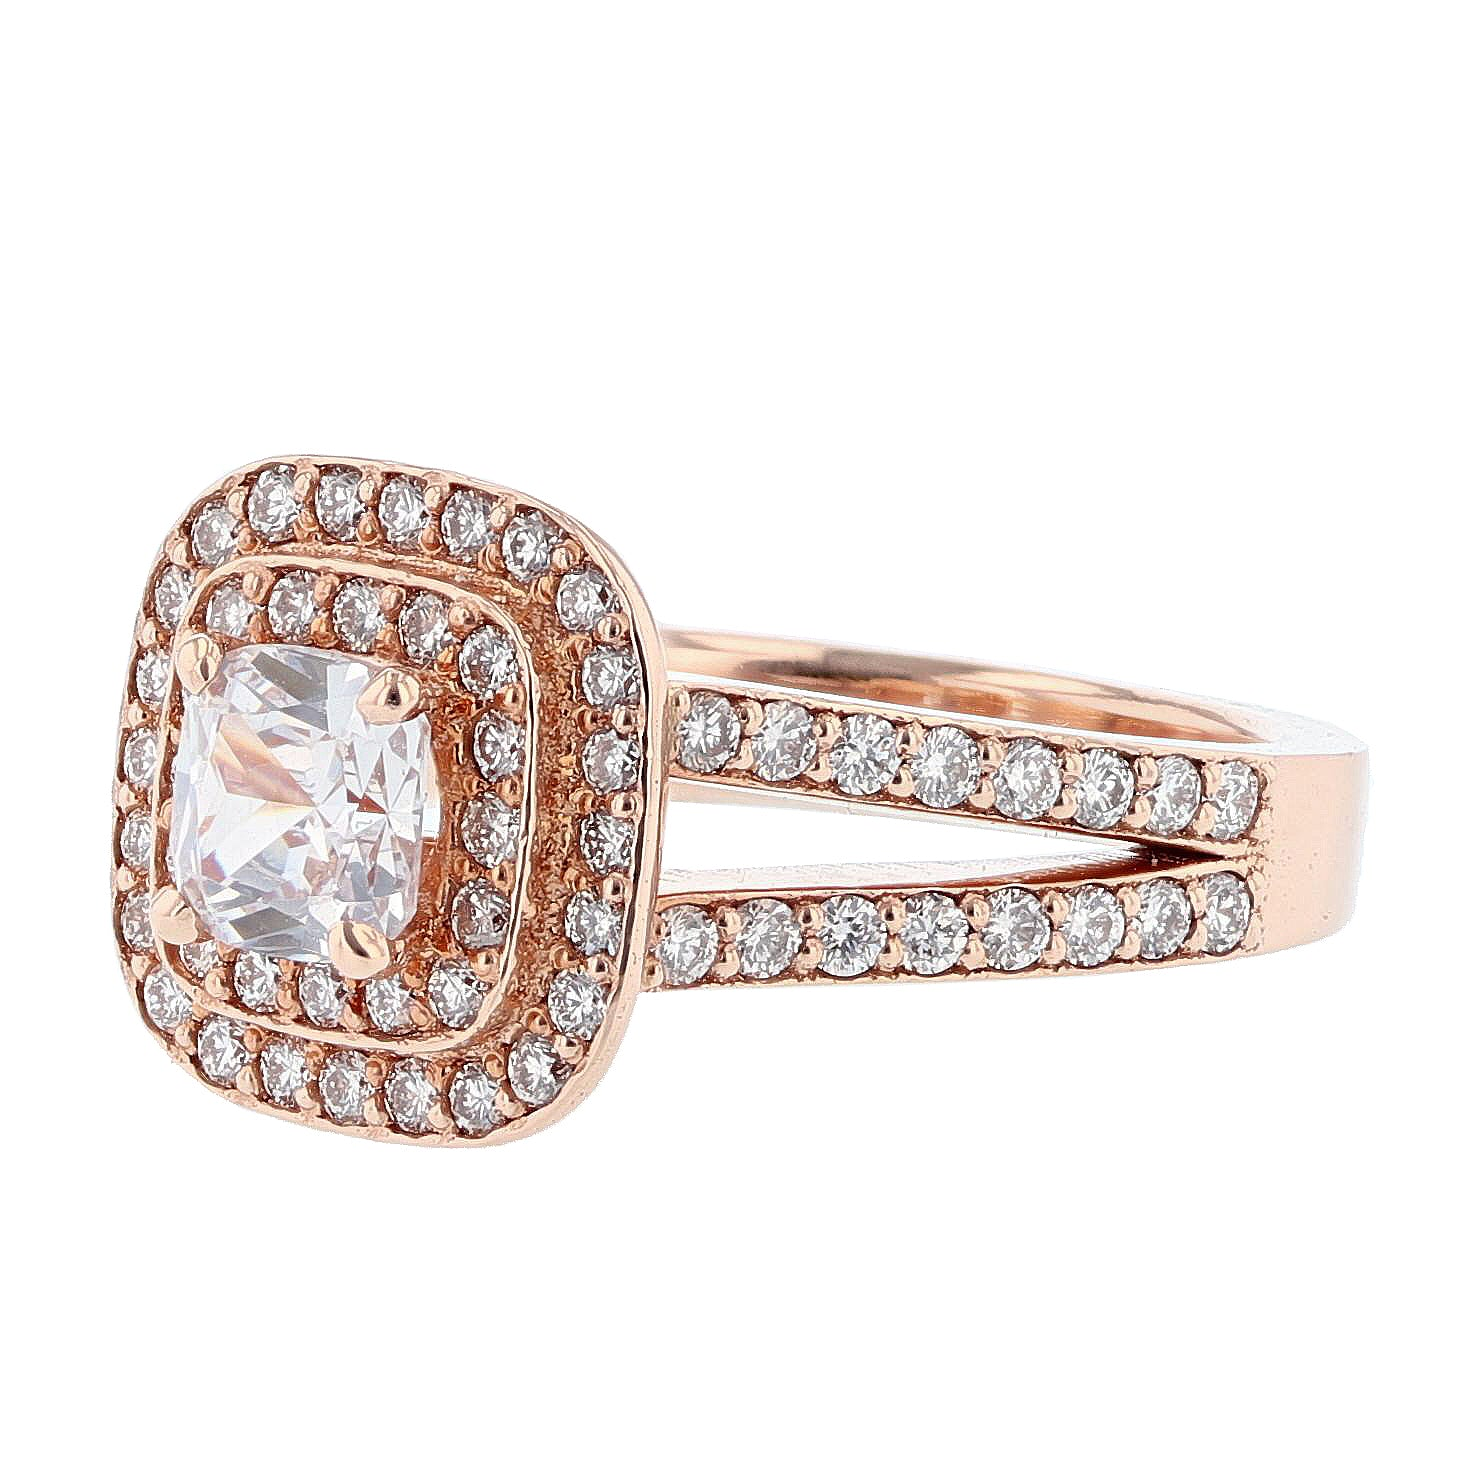 14K Rose Gold Cushion Double Halo Diamond Engagement Ring - Nazarelle